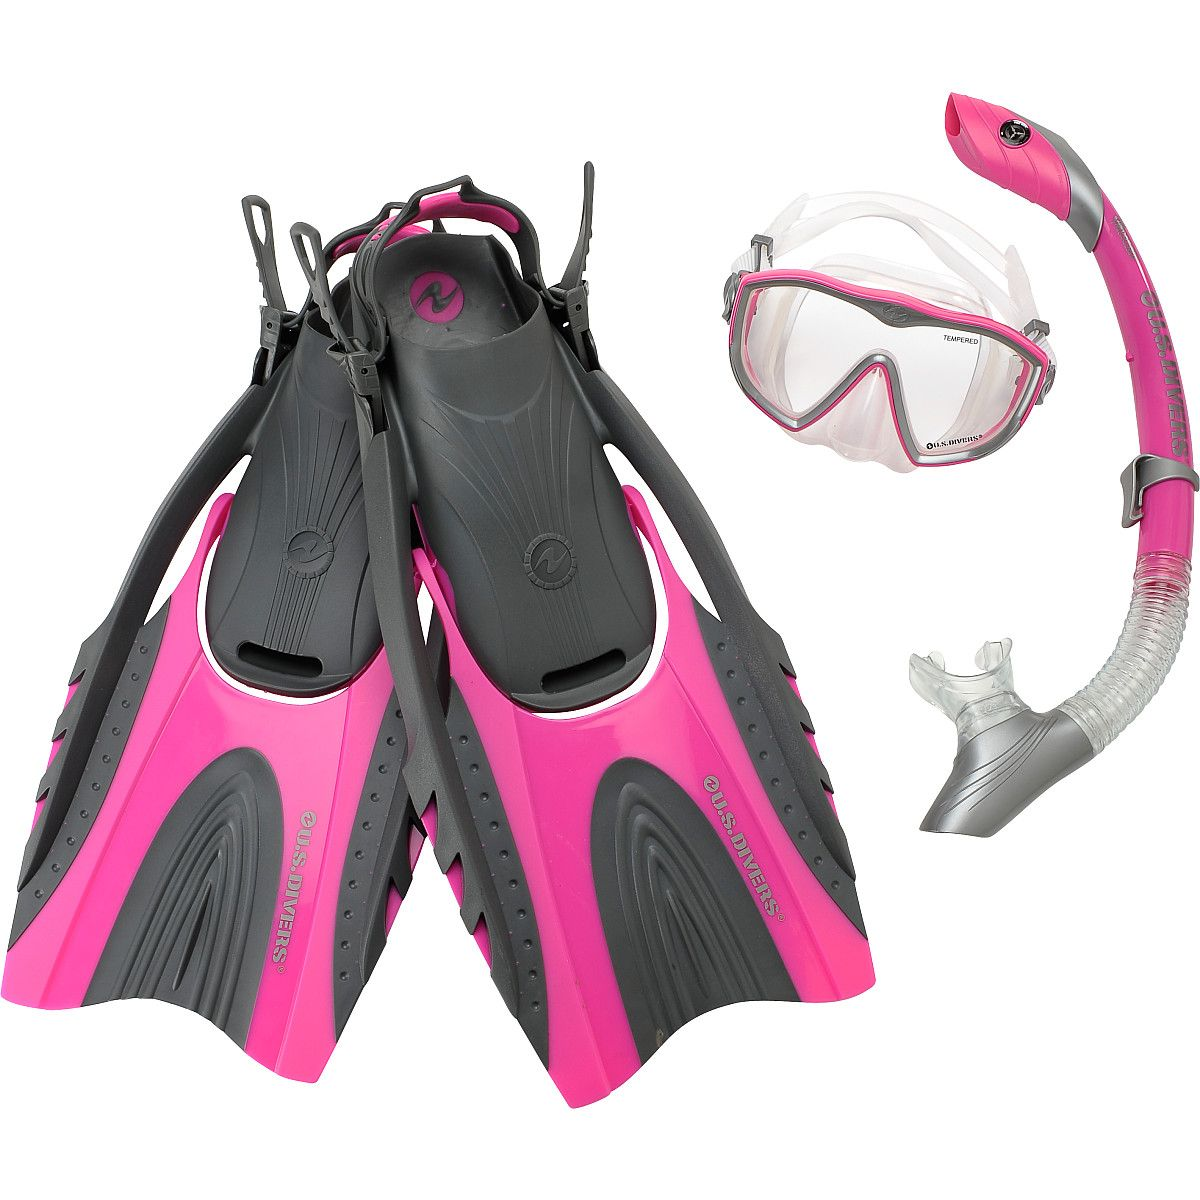 I'll need my set for snorkeling U.S. DIVERS Women's